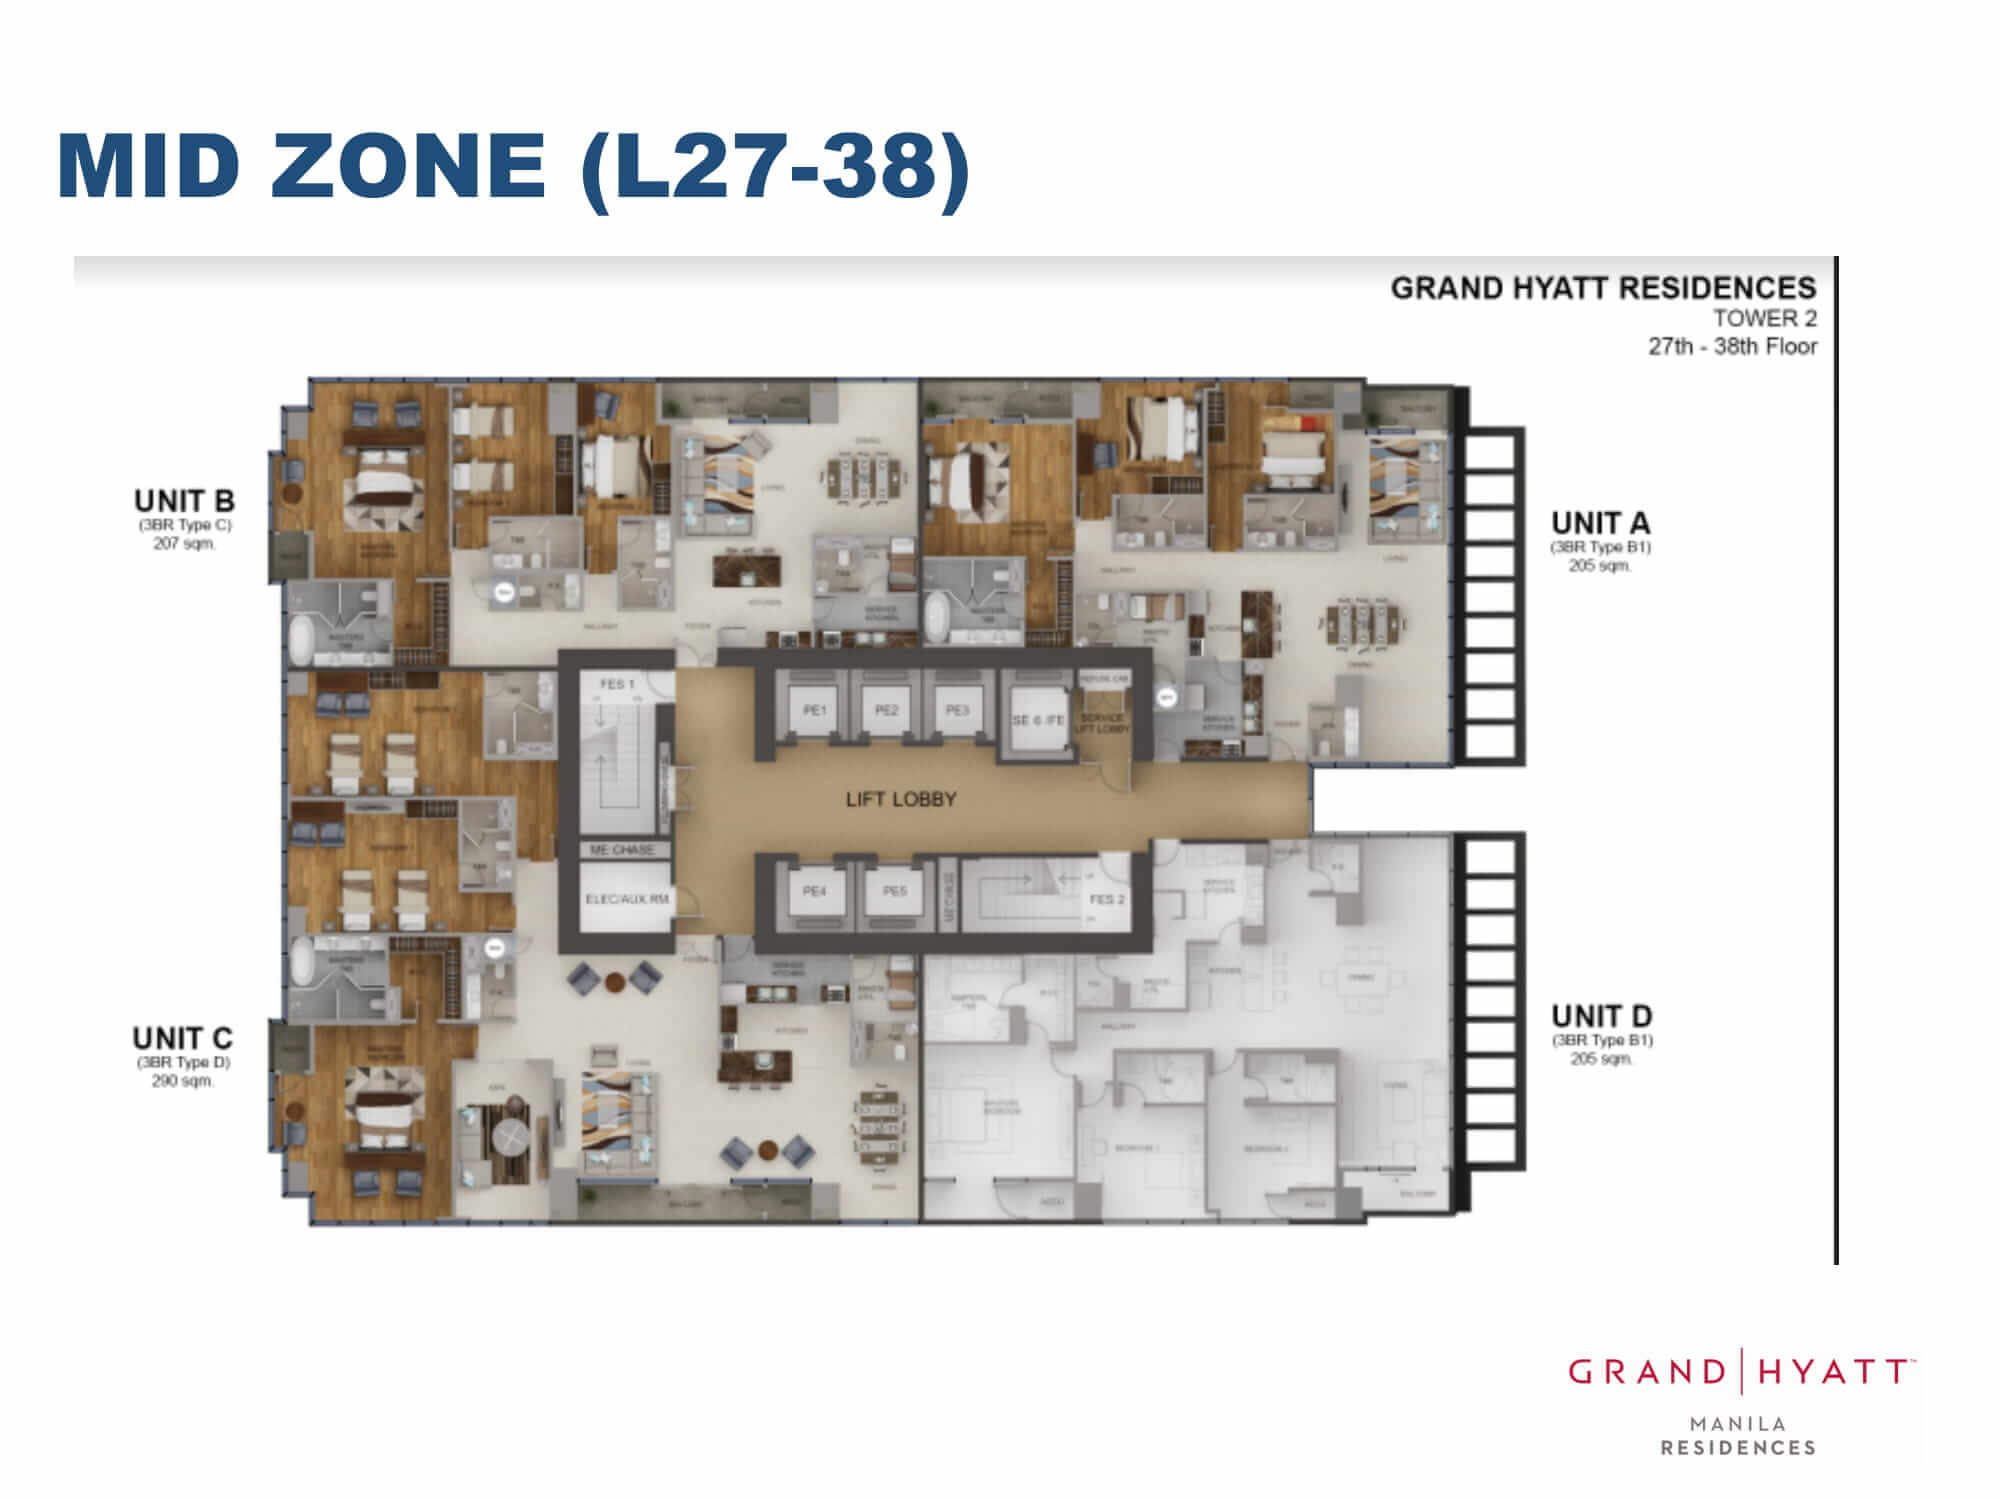 MID ZONE L27-38 - GRAND HYATT RESIDENCES GOLD TOWER